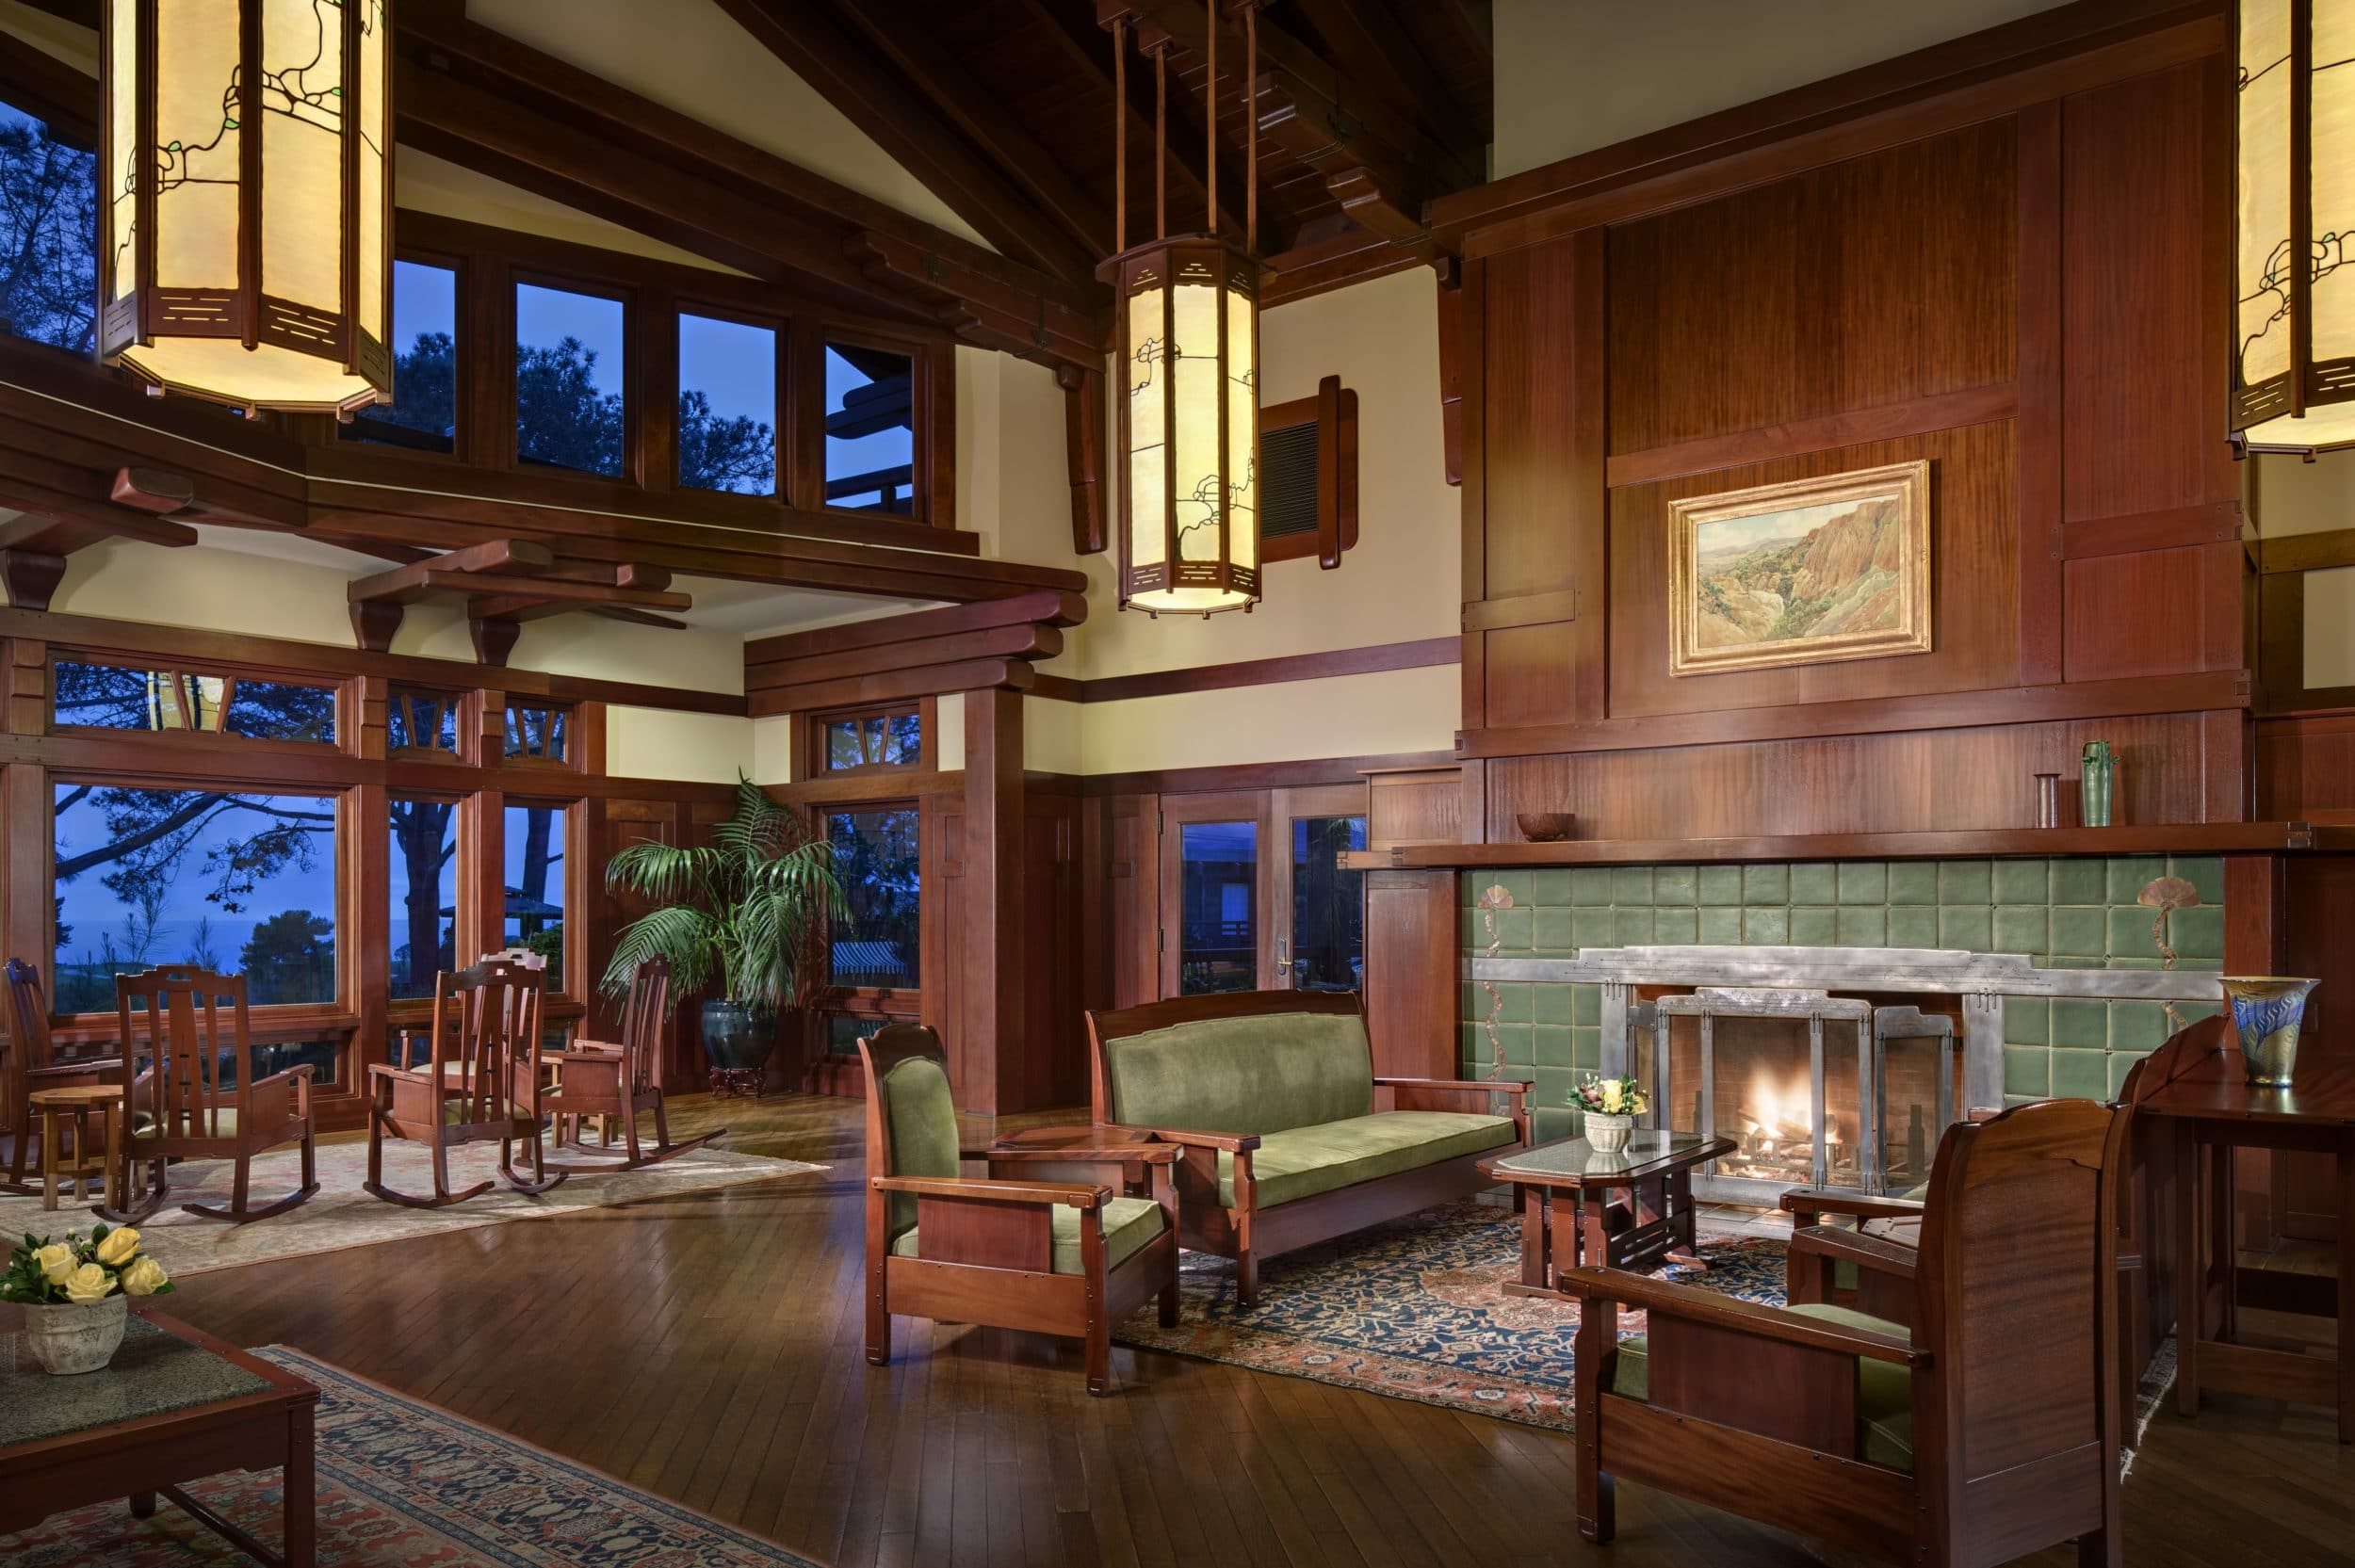 The Lodge at Torrey Pines lobby showcases 1900s California Craftsman-style.